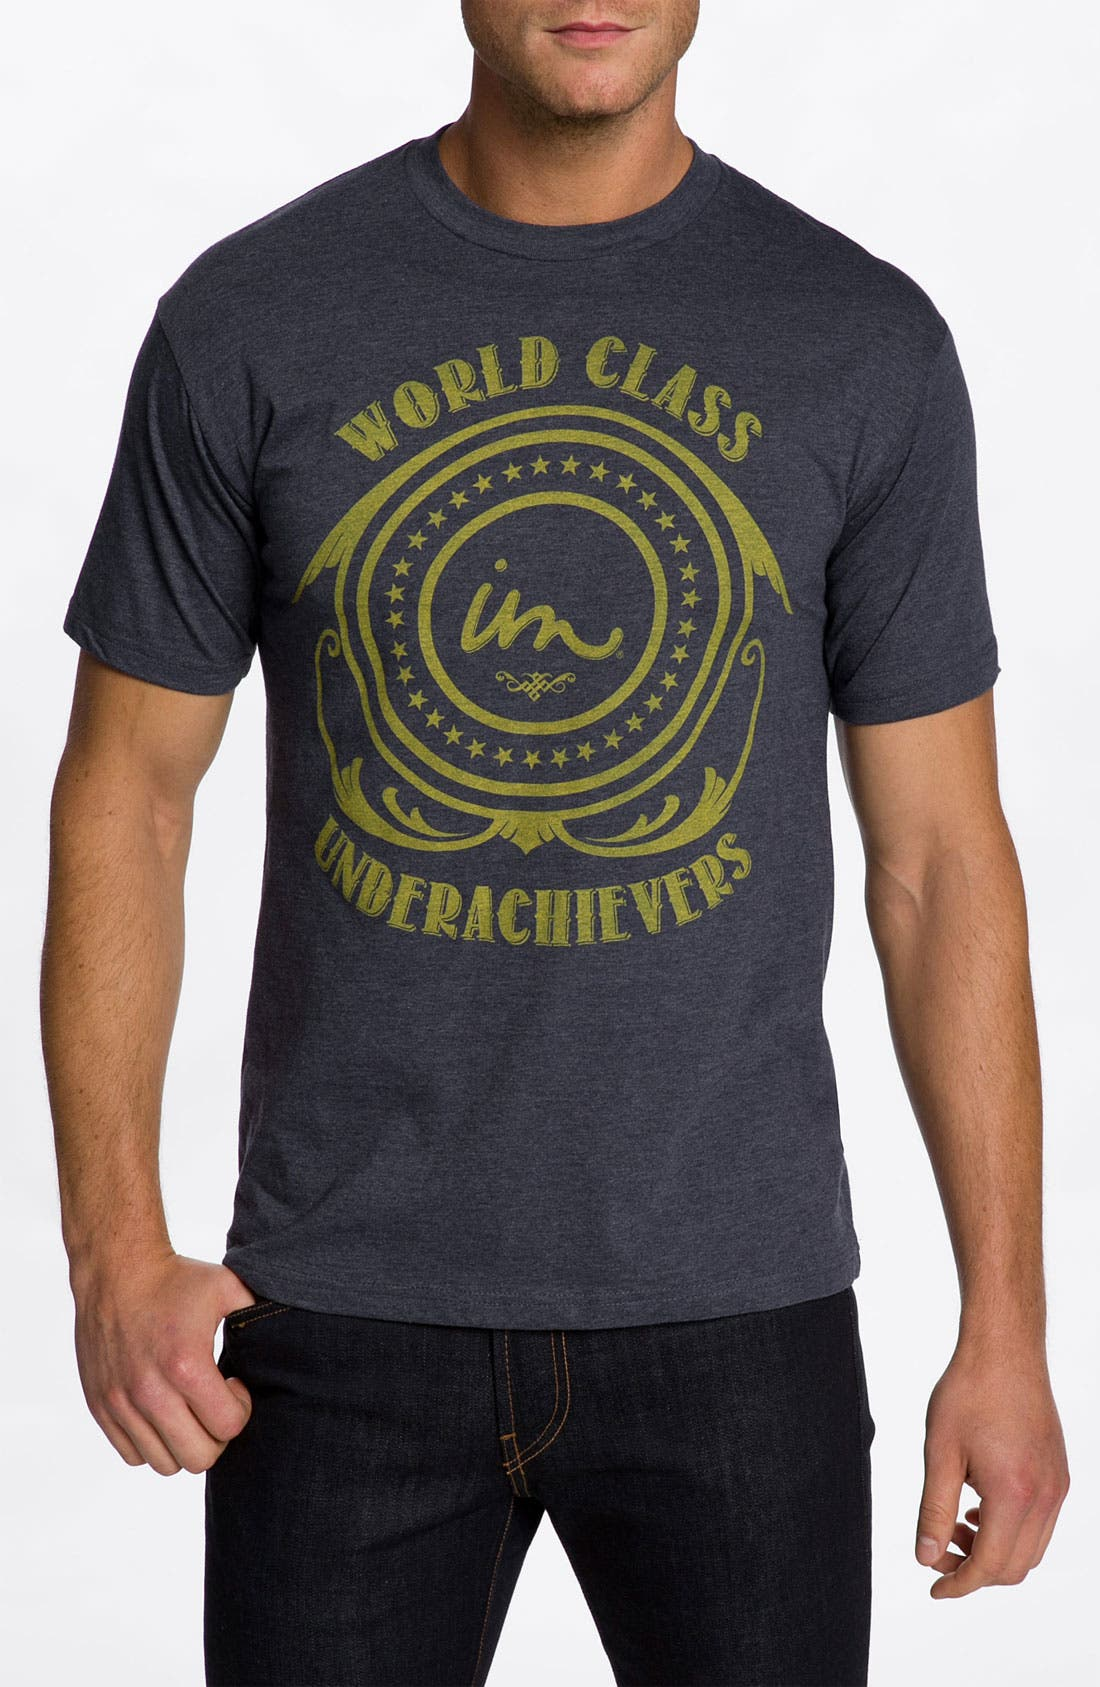 Alternate Image 1 Selected - Imperial Motion 'World Class' Graphic T-Shirt